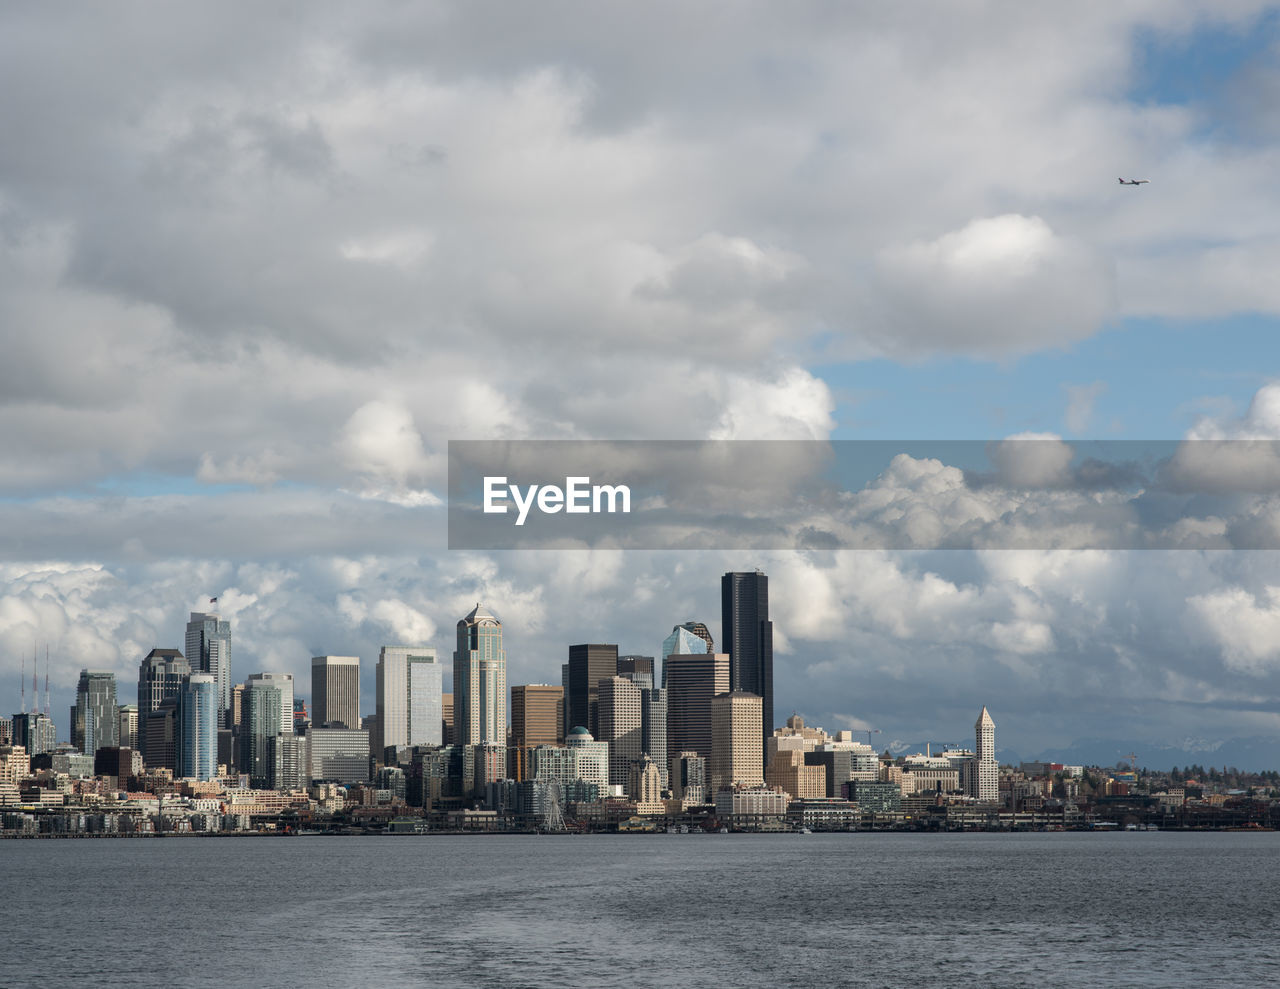 skyscraper, city, cityscape, architecture, sky, building exterior, built structure, cloud - sky, urban skyline, waterfront, downtown district, modern, financial district, day, city life, no people, outdoors, sea, water